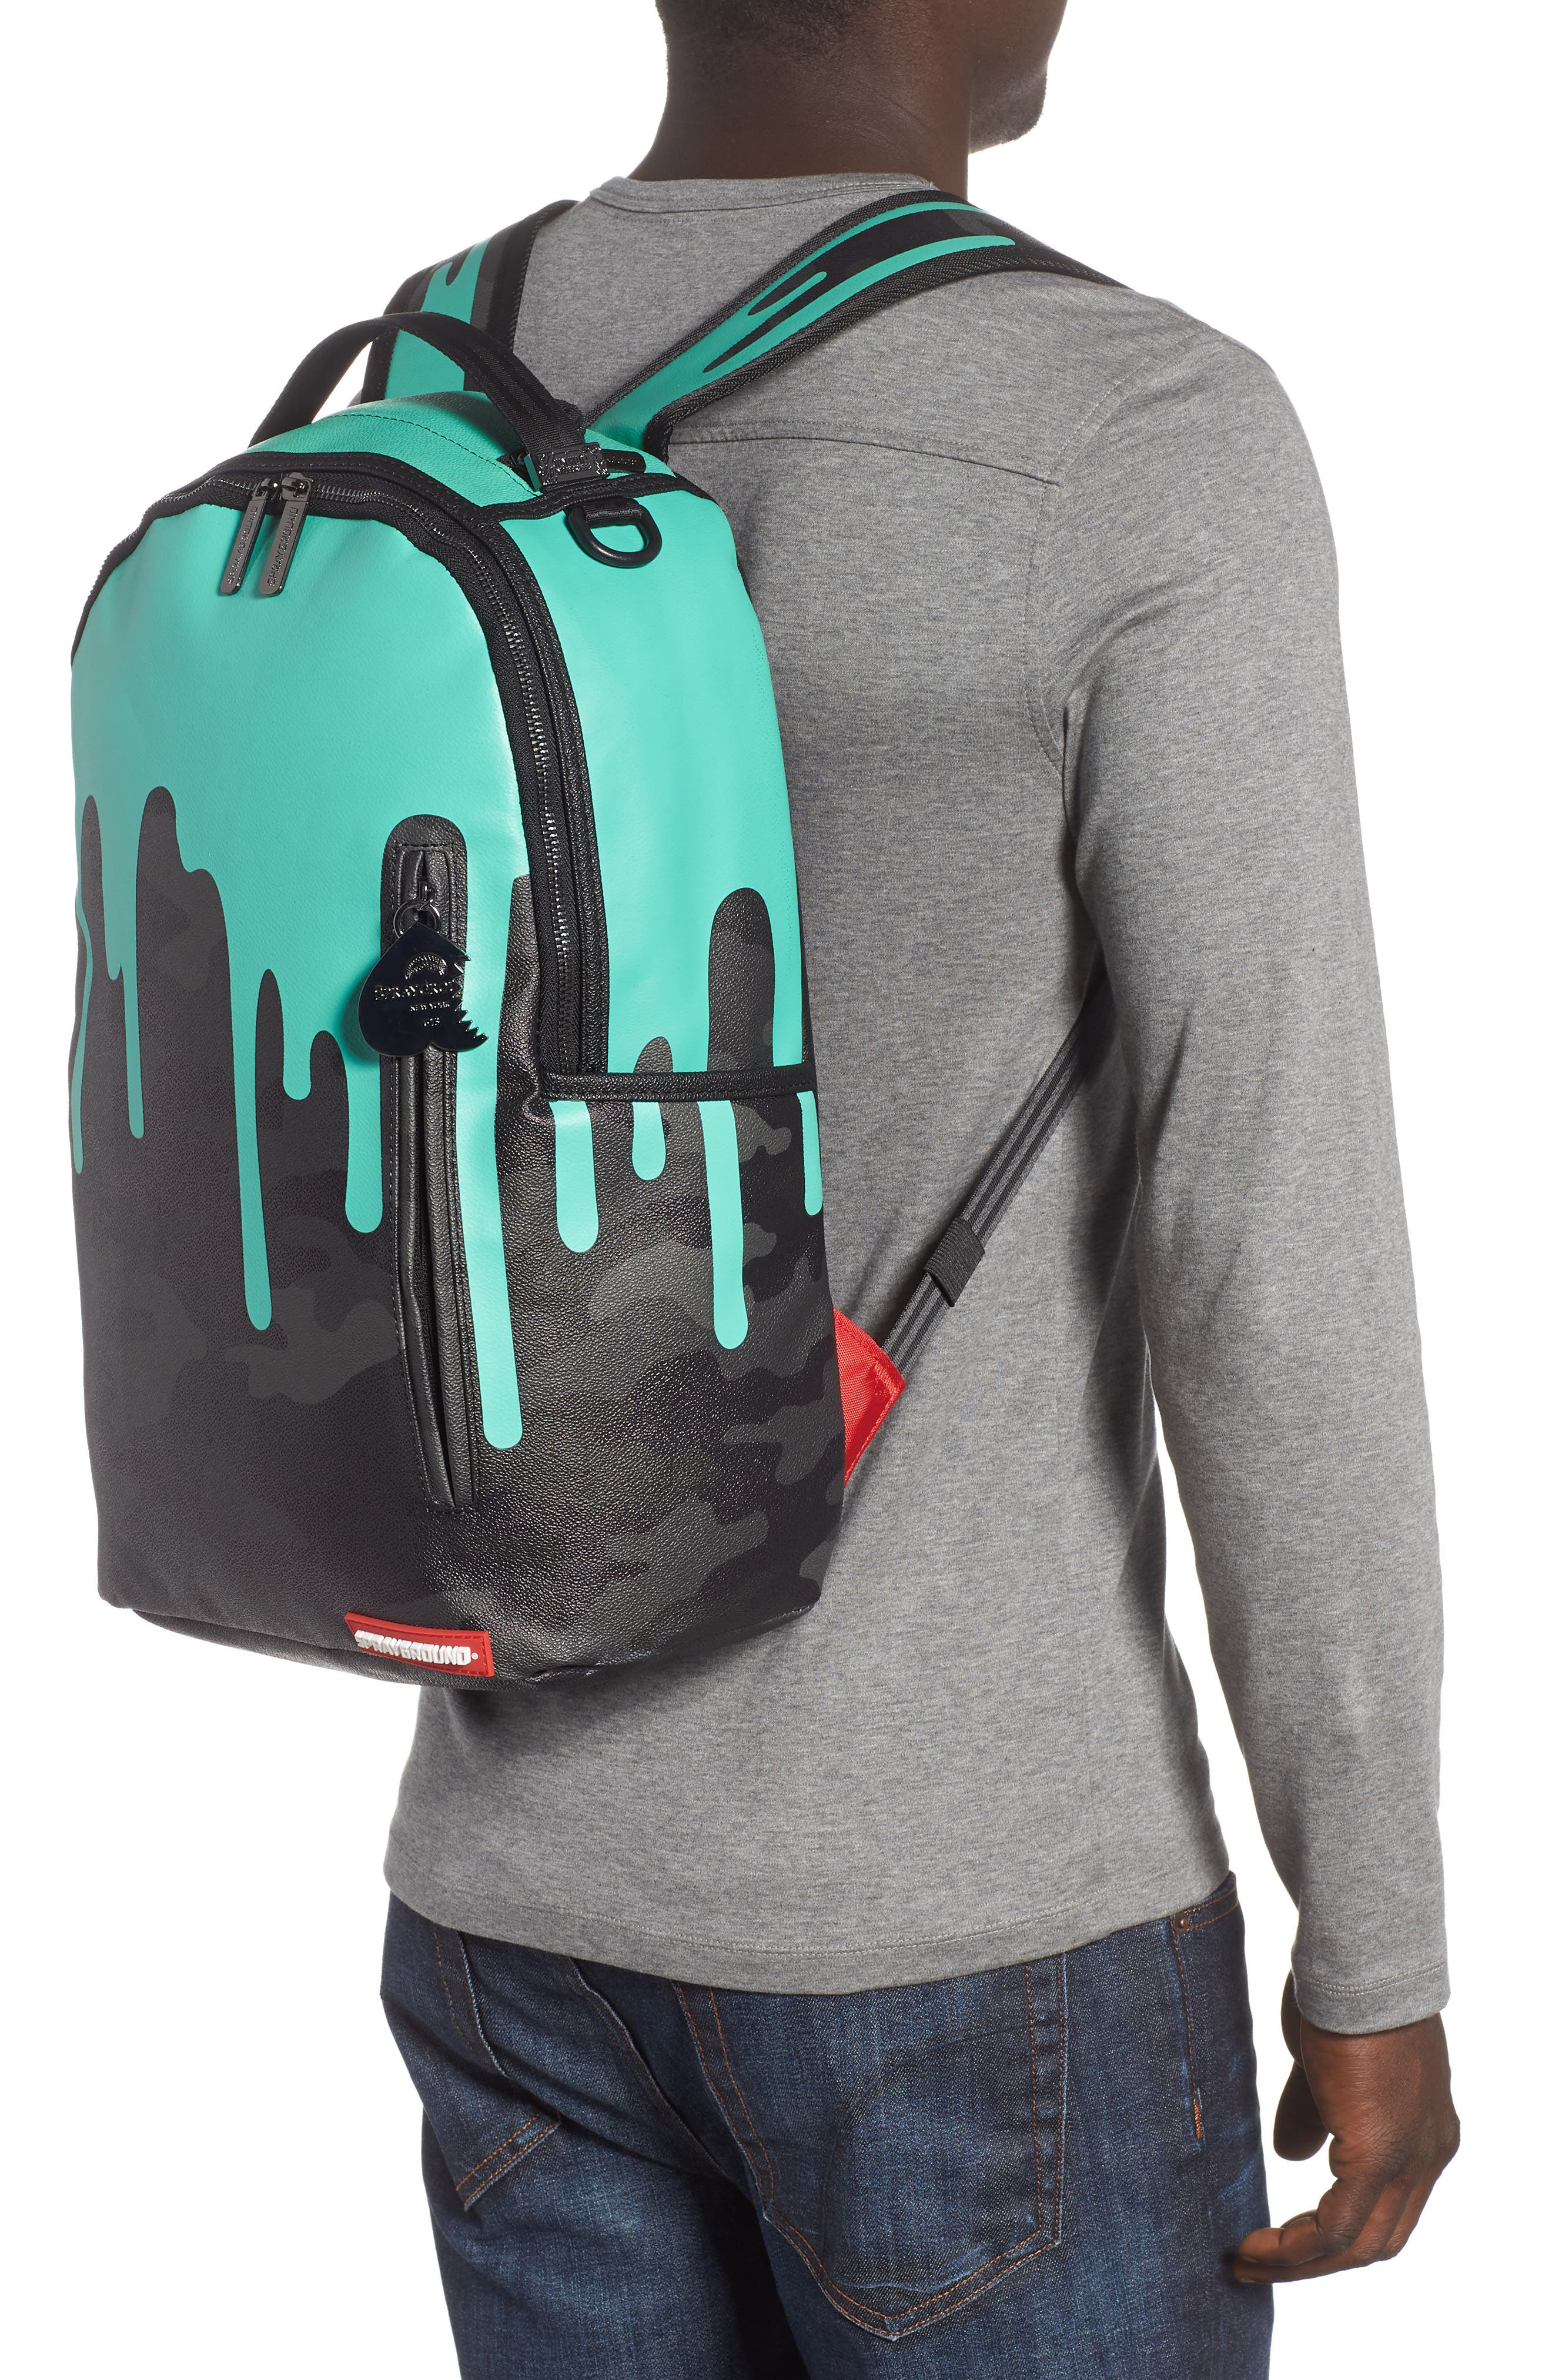 Tiff Drips Print Backpack,                             Alternate thumbnail 2, color,                             Camo/ Teal